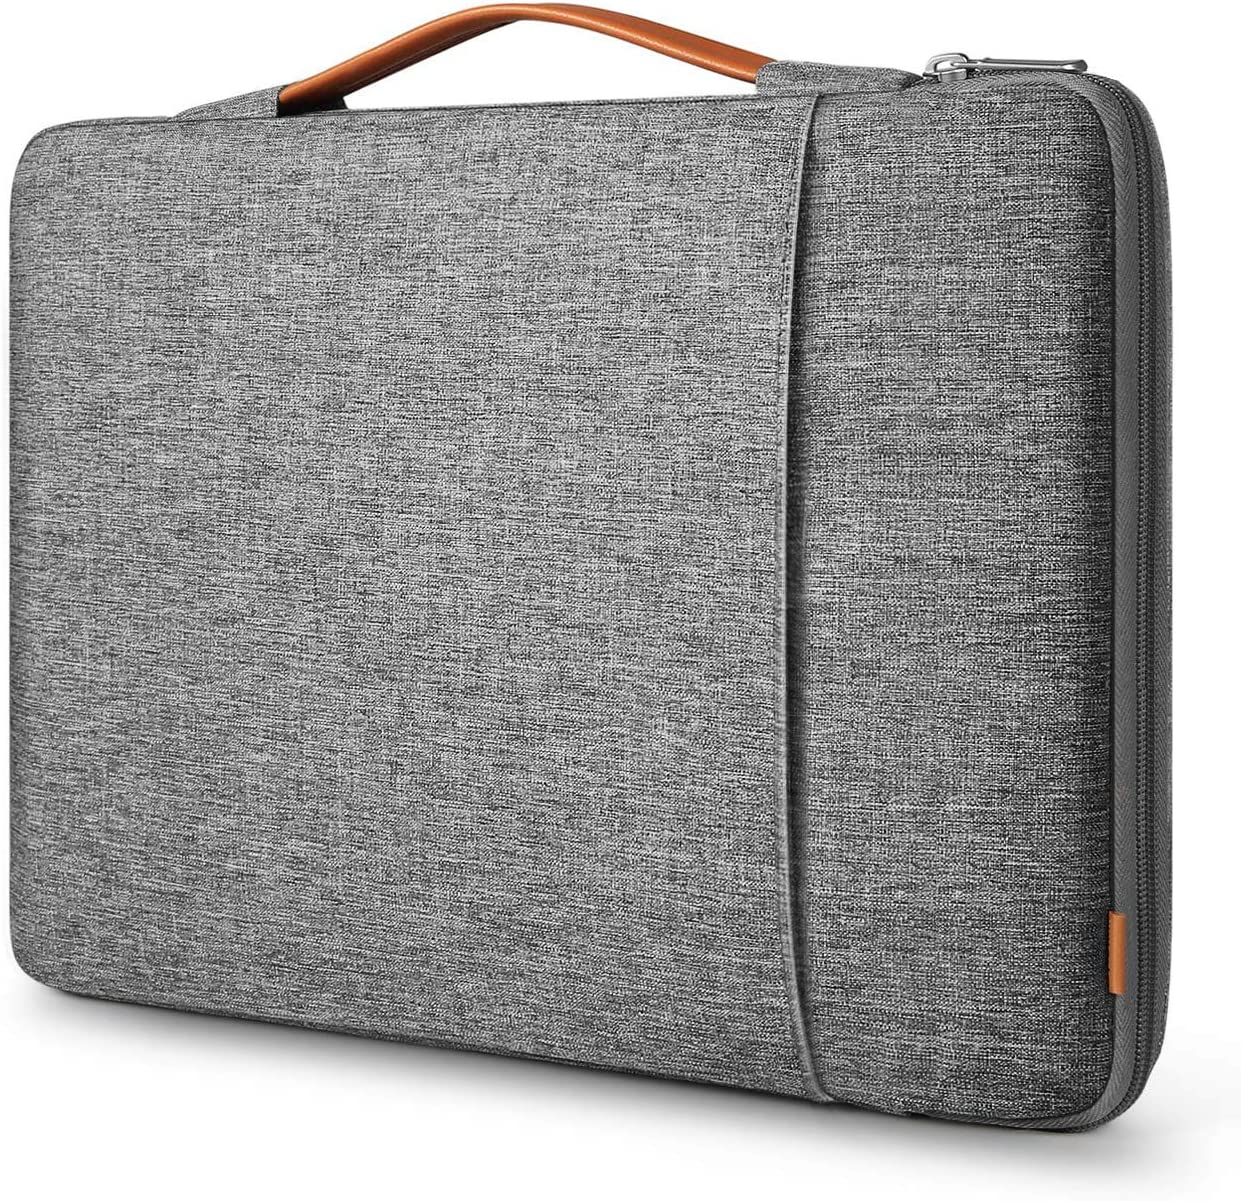 Inateck 15-15.6 Inch 360 Protection Shockproof Laptop Sleeve Carrying Case Bag Briefcase Compatible with 15.6 HP/Lenovo/Acer/ASUS/Dell Laptops Chromebooks Ultrabooks Netbooks Gray